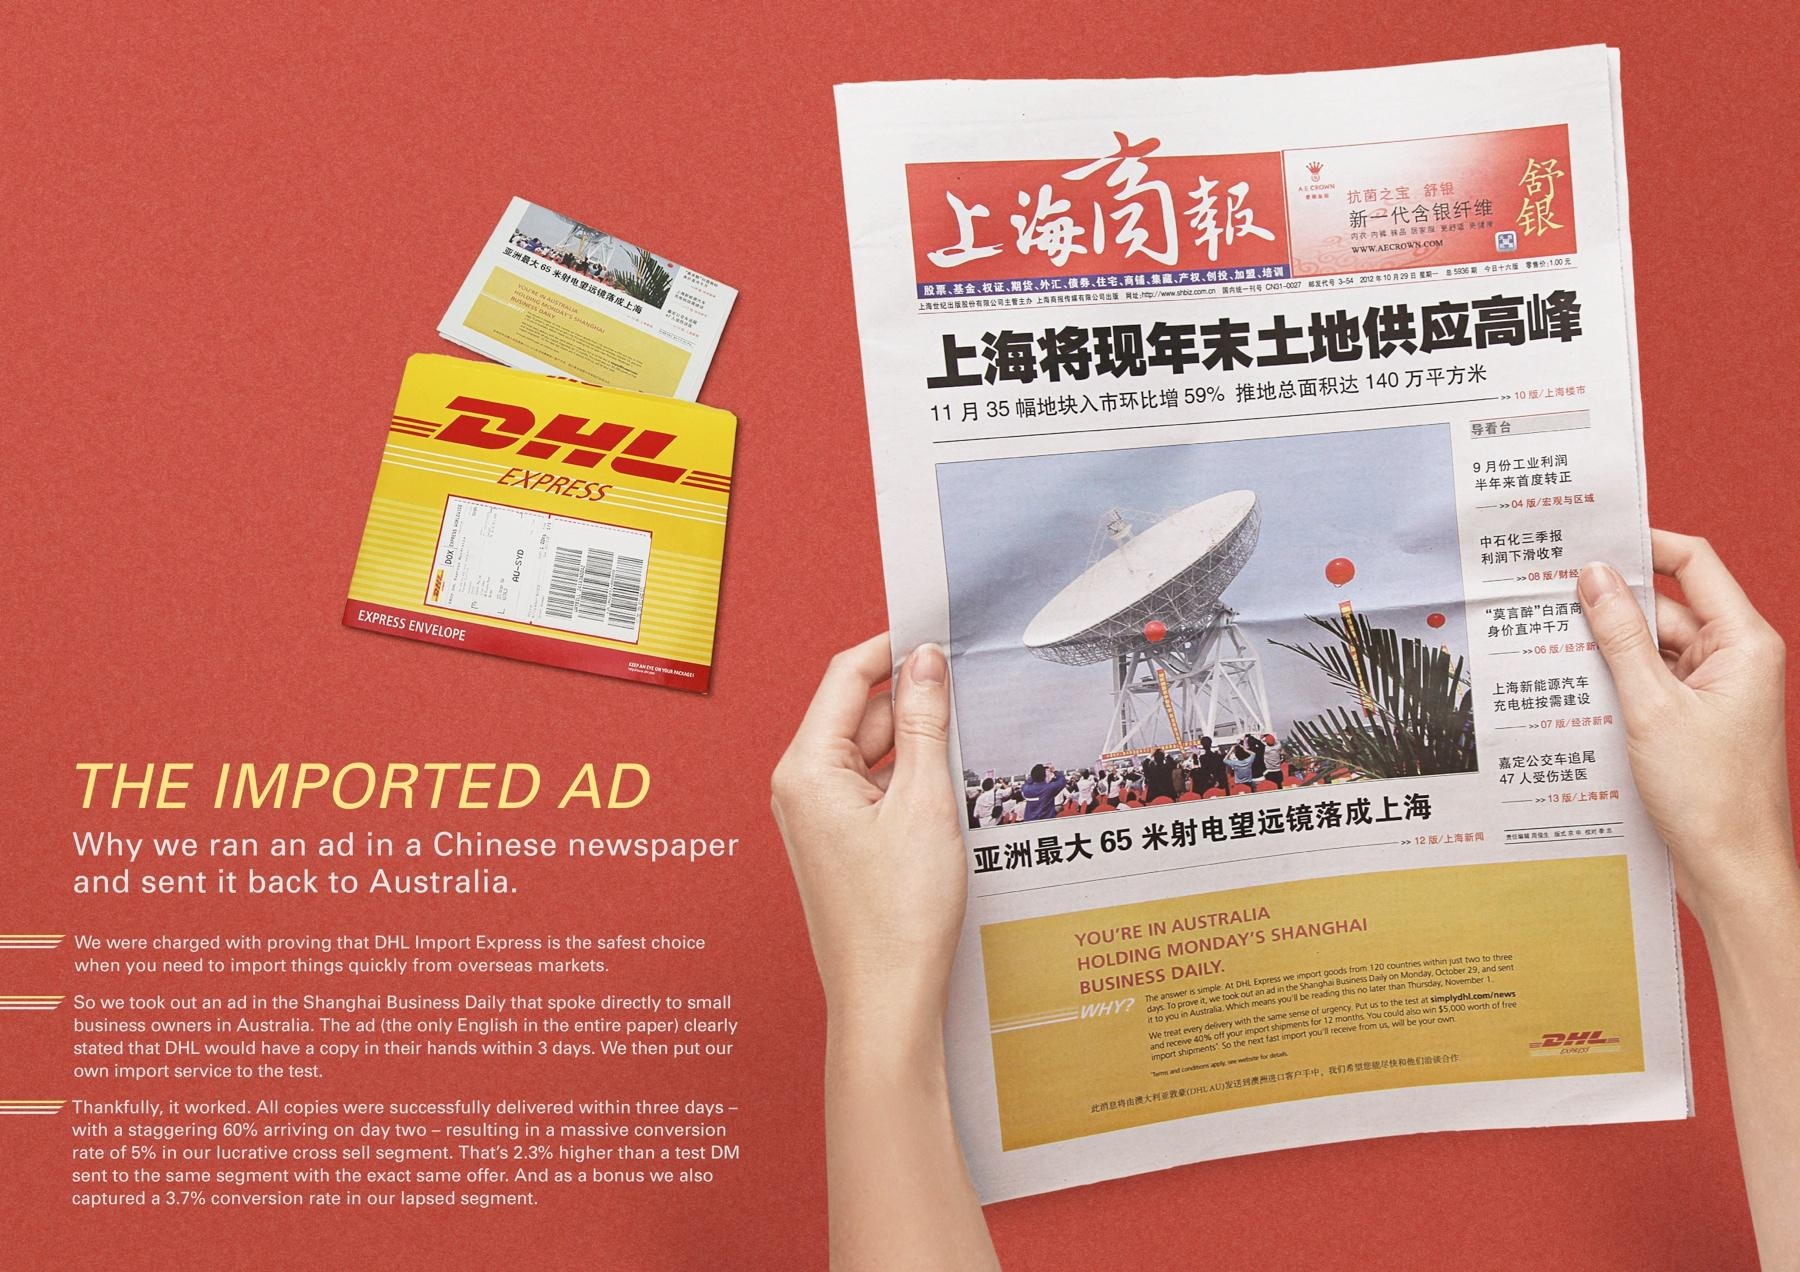 DHL Direct Ad -  The Imported Ad